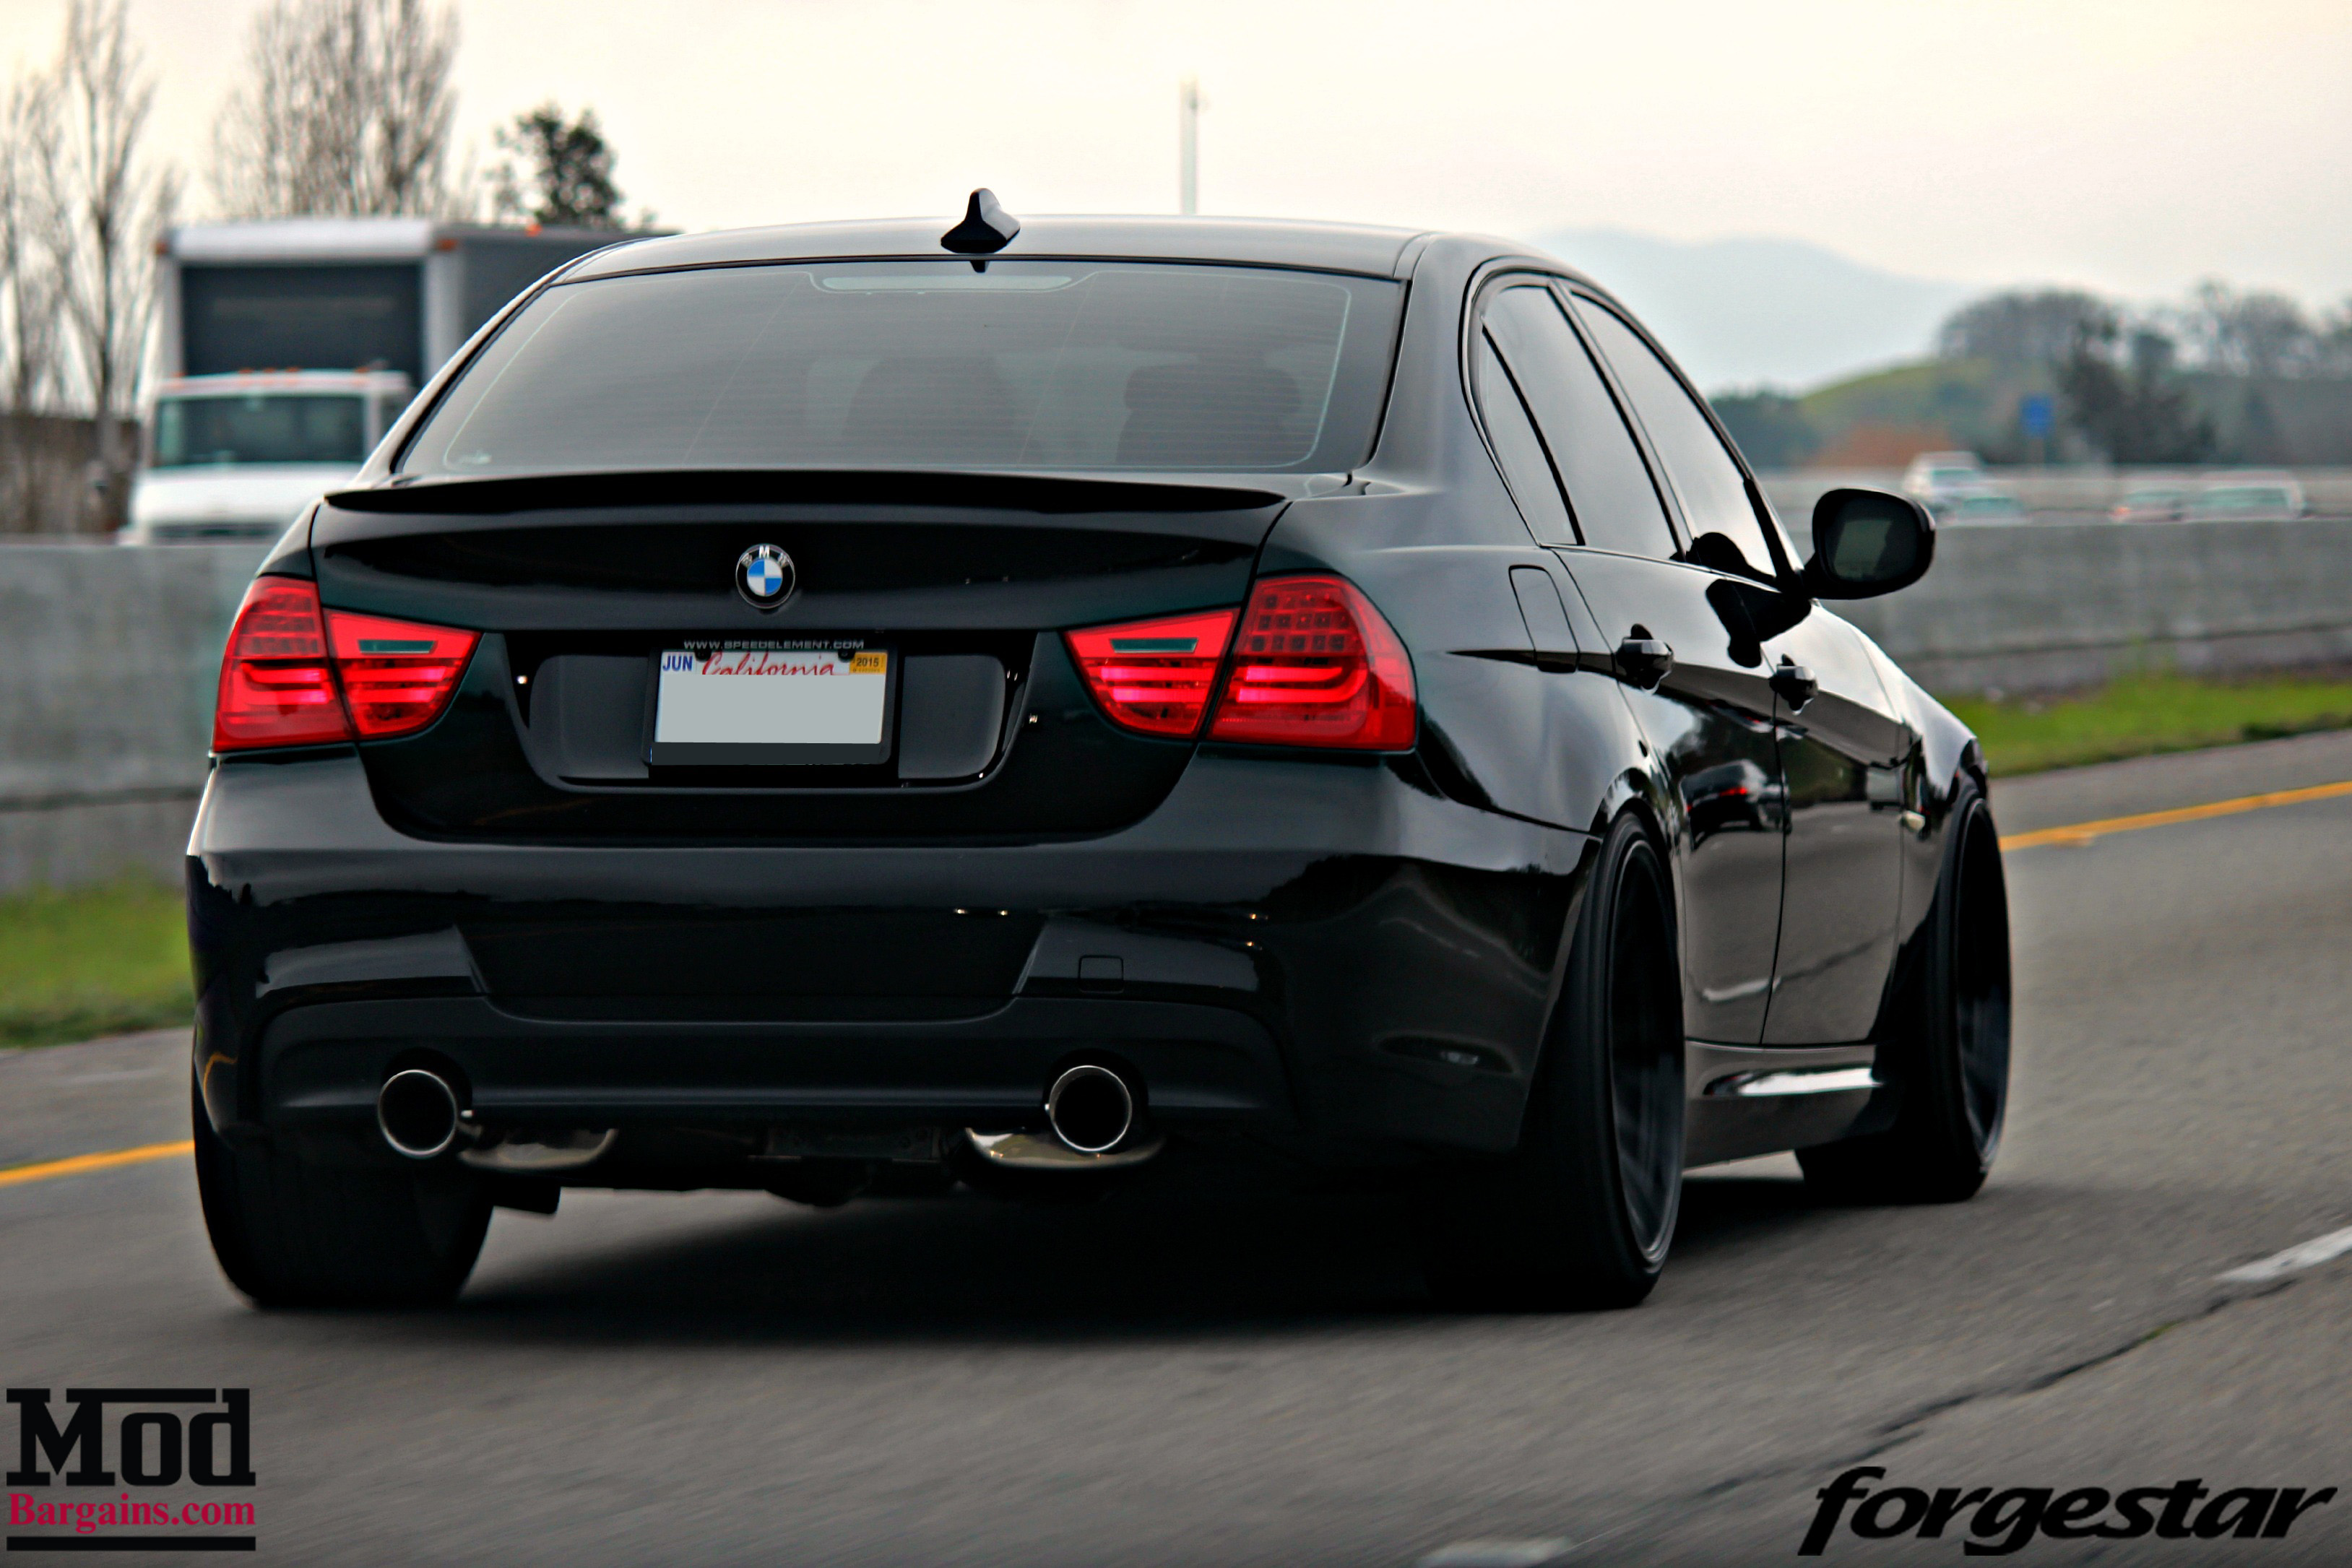 cole durden s e90 335i brings the fight on forgestar f14 super deep concave wheels modbargains. Black Bedroom Furniture Sets. Home Design Ideas